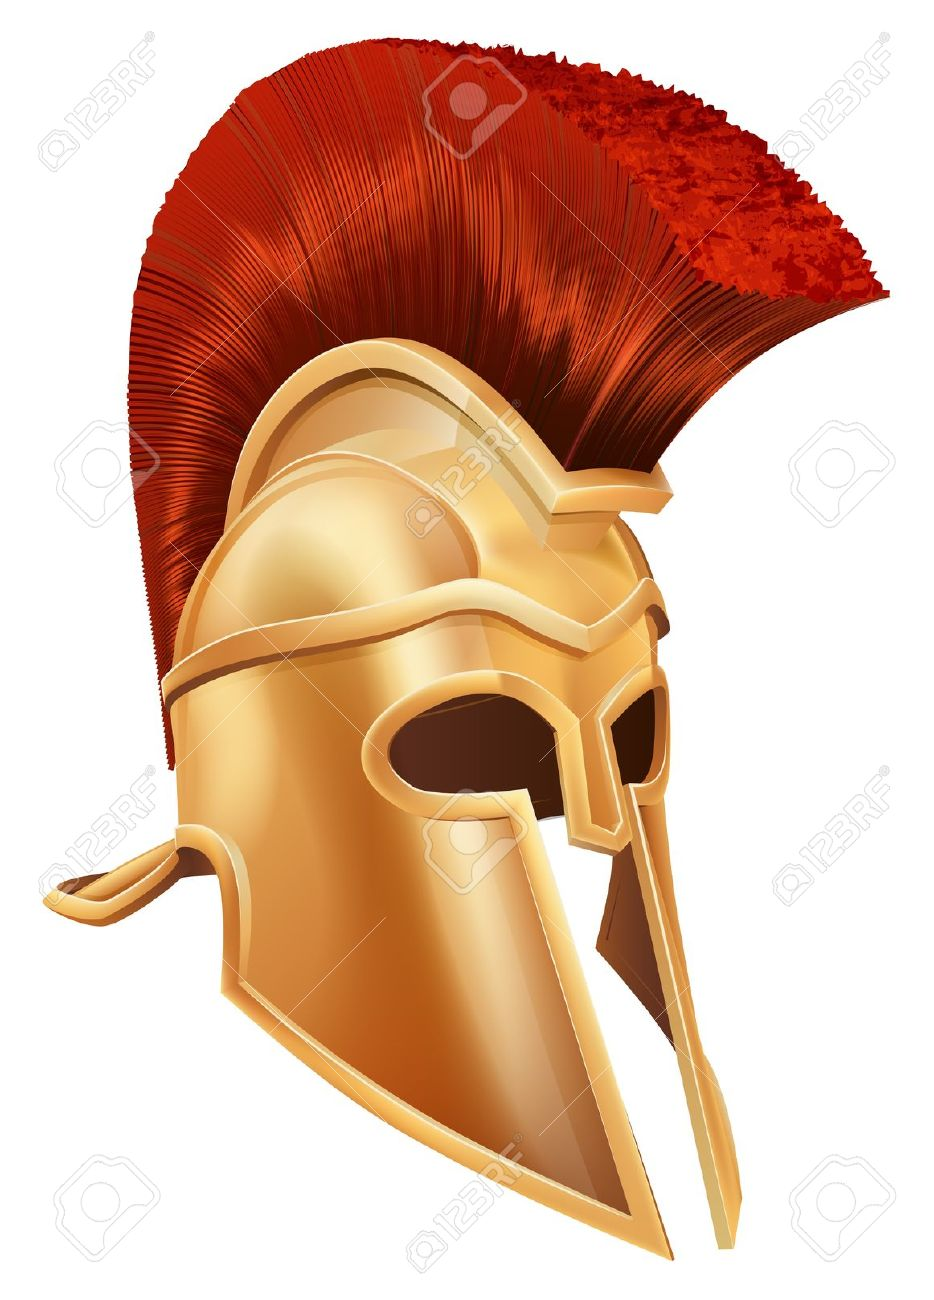 Illustration Of A Bronze Trojan Helmet, Spartan Helmet, Roman.